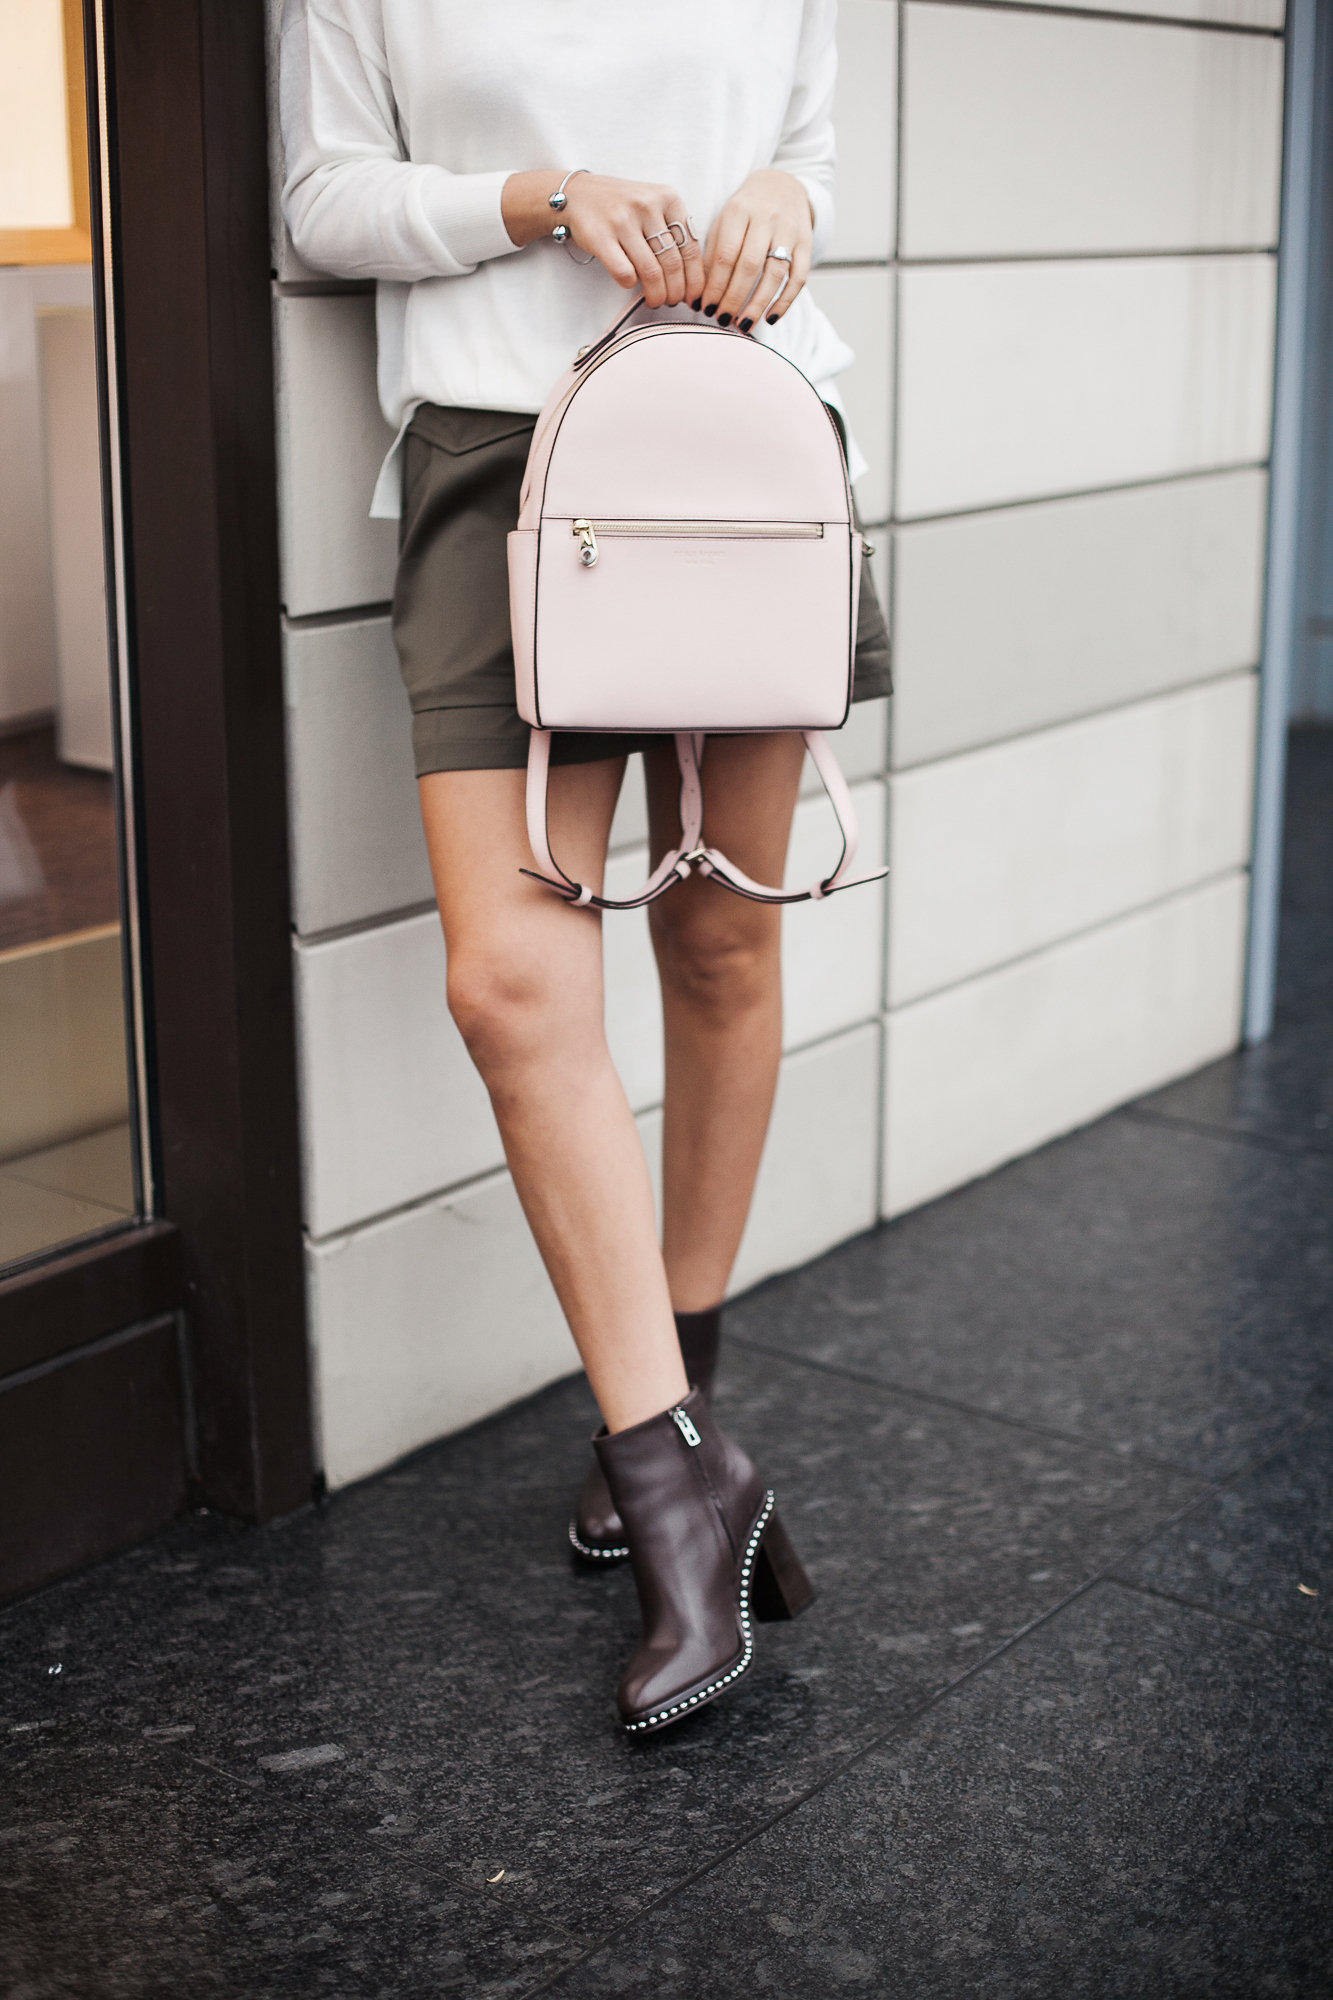 Henri Bendel Backpack and Coach Boots